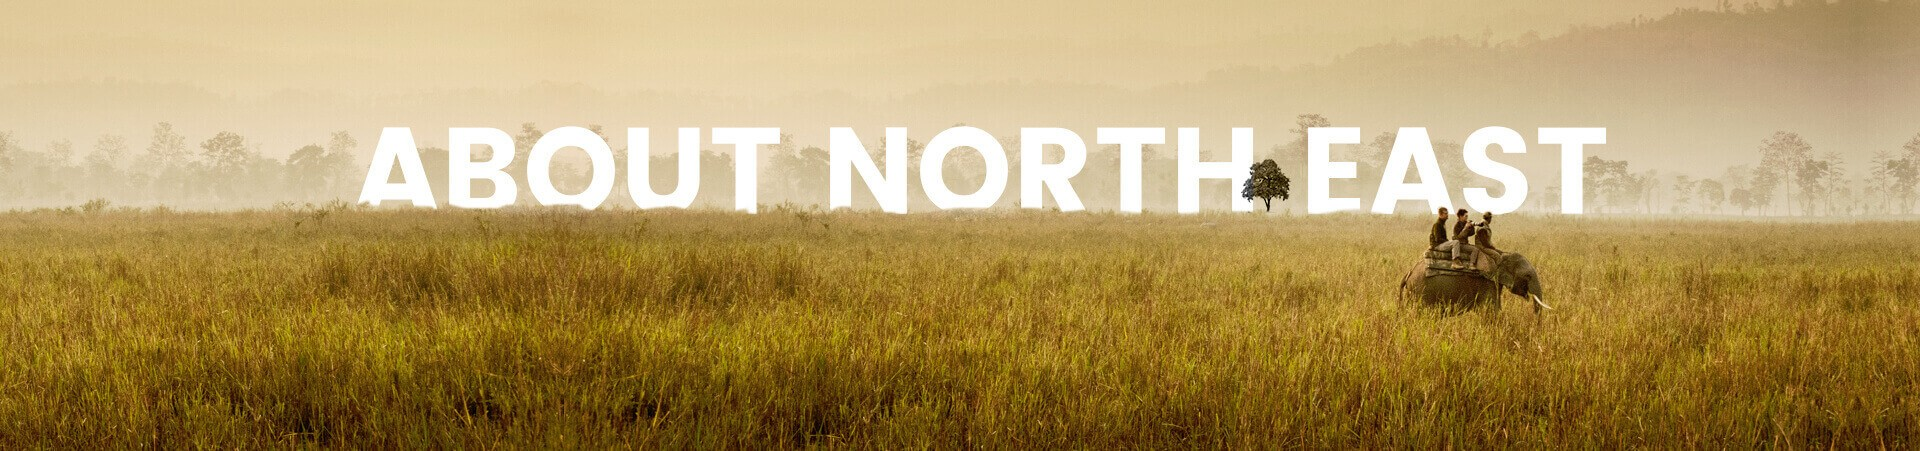 About North East